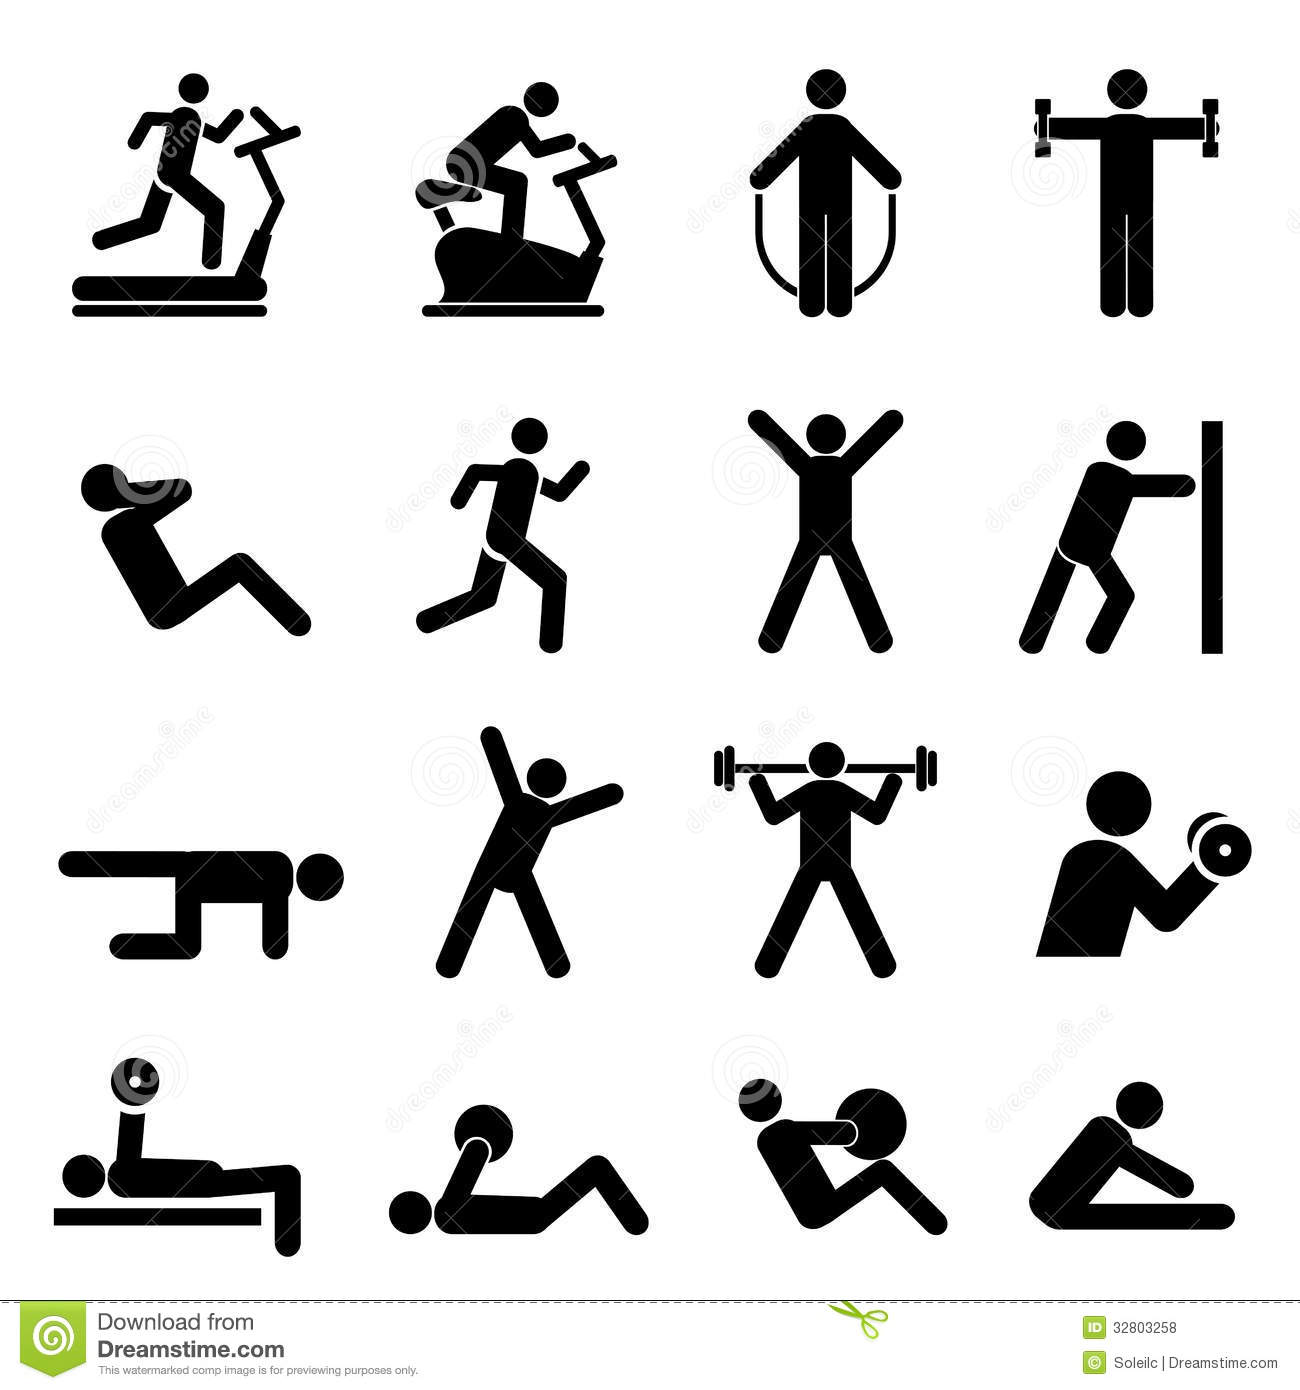 funny exercise diagram object oriented system sequence fun facts about exercising digitfit